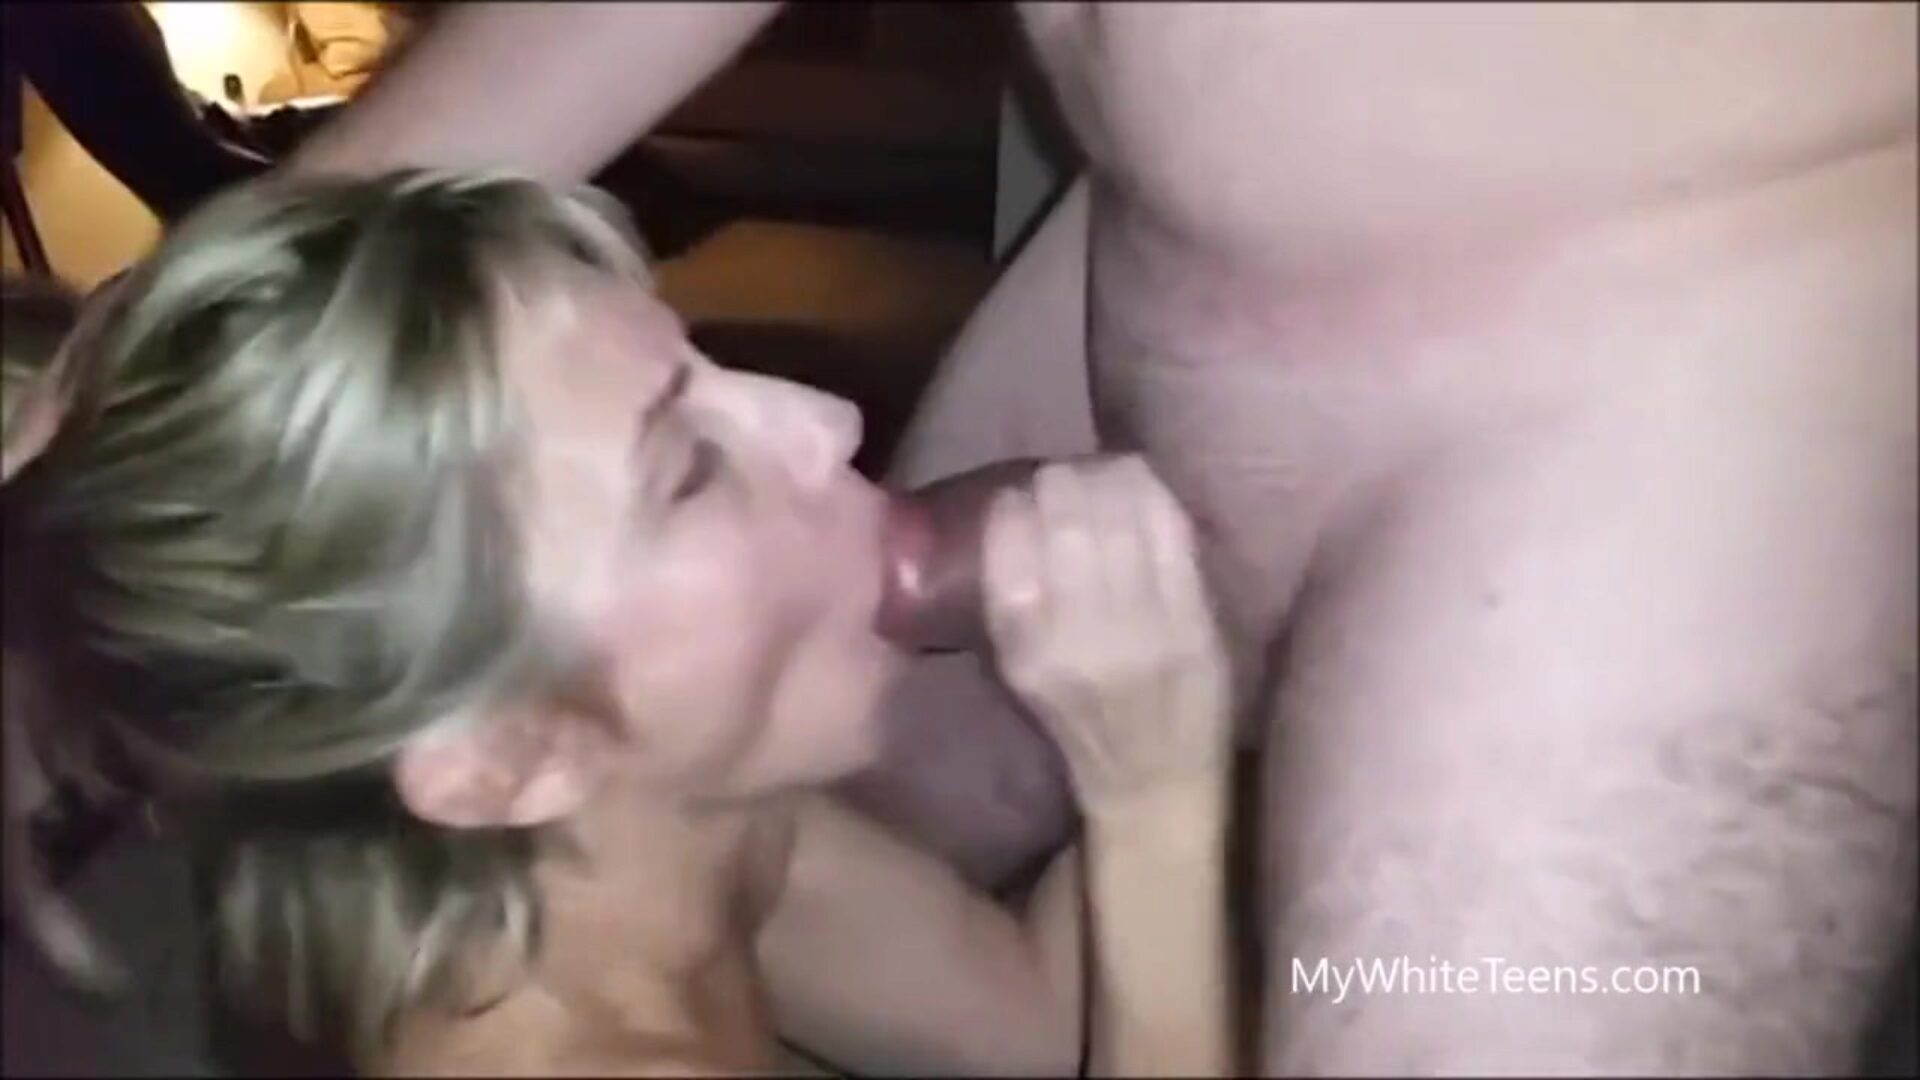 37yr aged MILF gulping in front of husband Pervert husband letting his golden-haired mother I'd like to fuck swallow some chaps blast